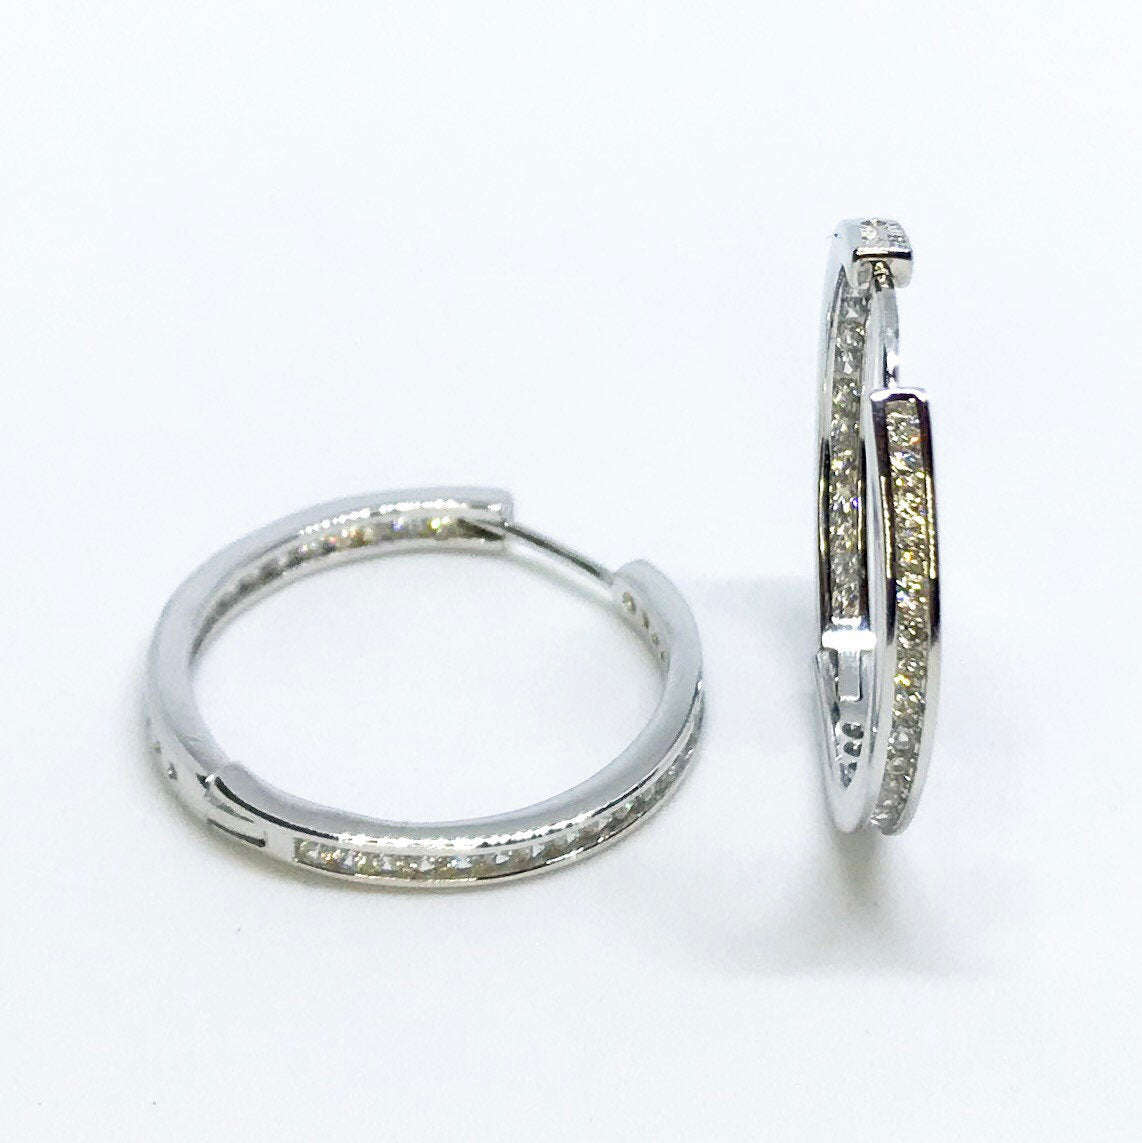 14K White Gold Layered on Sterling Silver Hoop Earrings - 3 Royal Dazzy